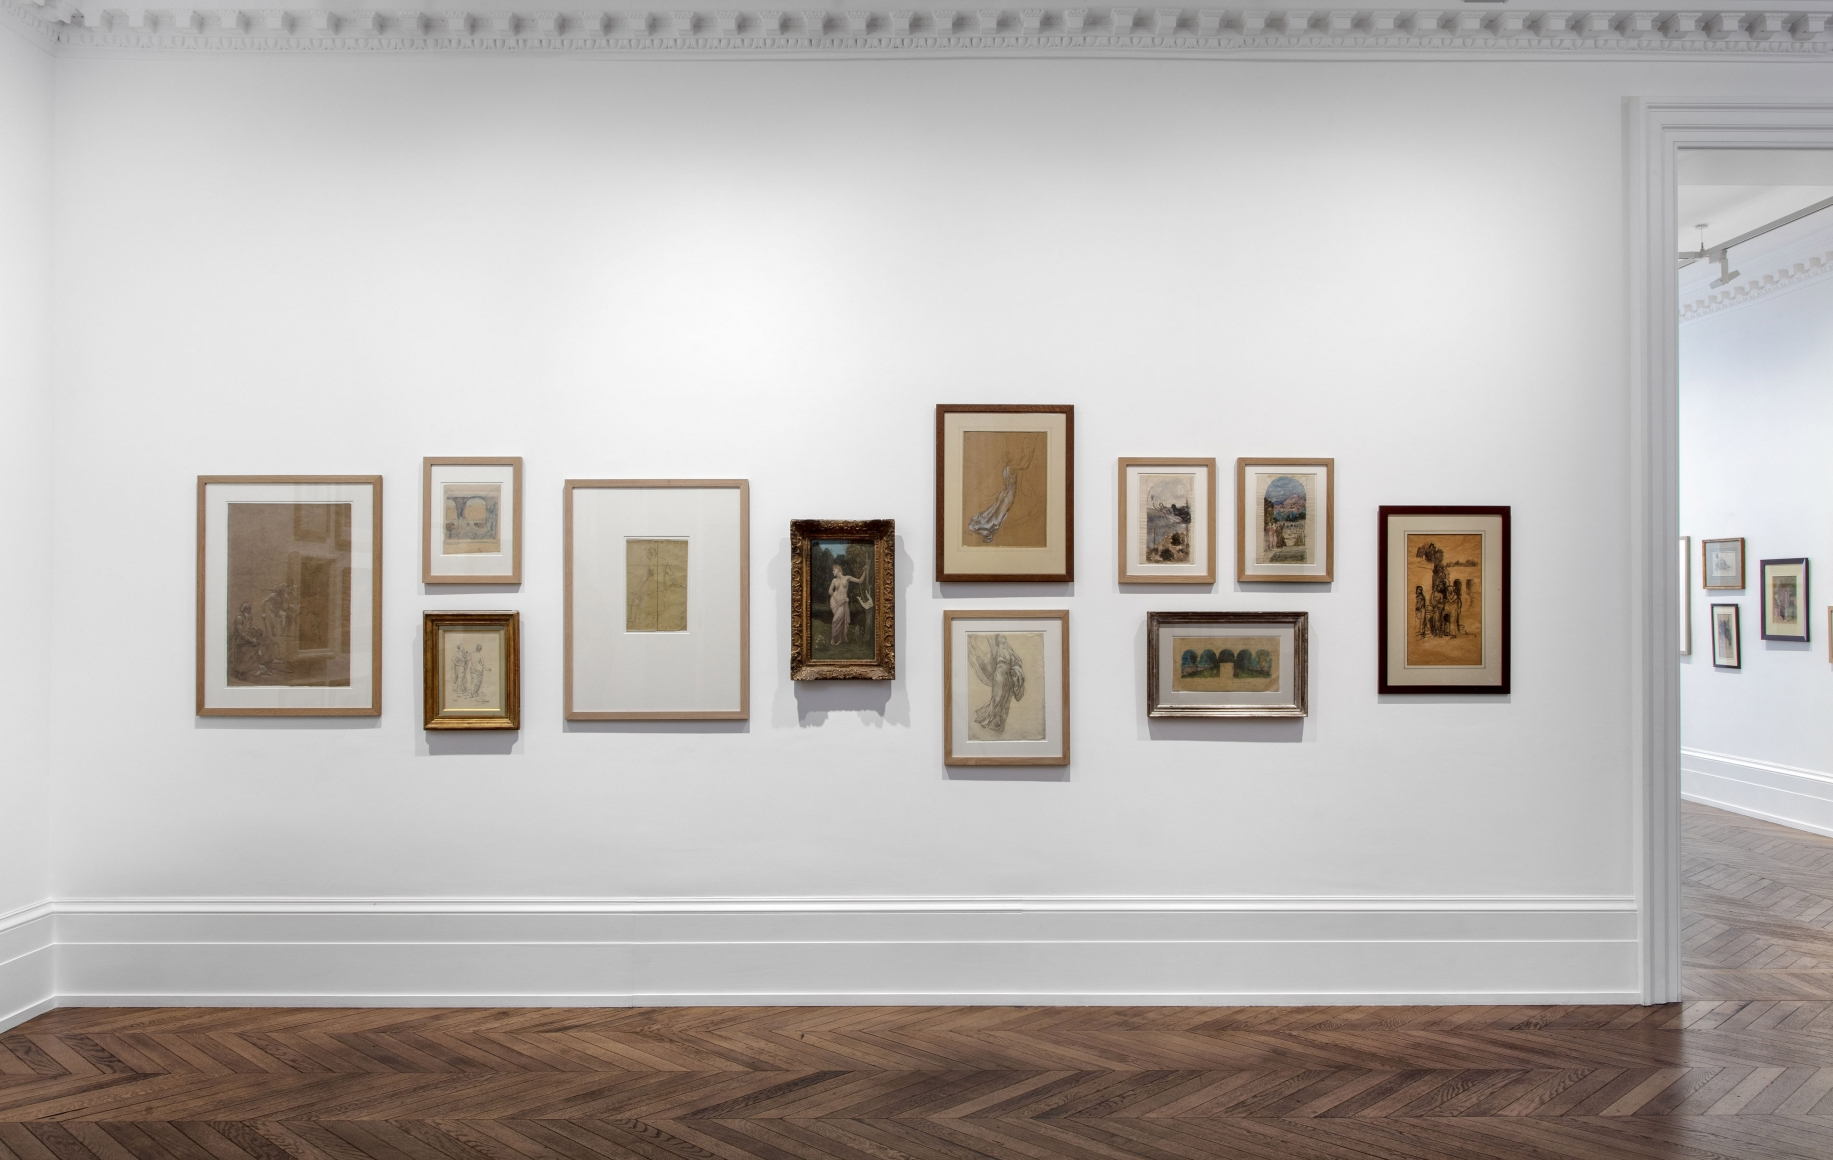 PIERRE PUVIS DE CHAVANNES, Works on Paper and Paintings, London, 2018, Installation Image 12